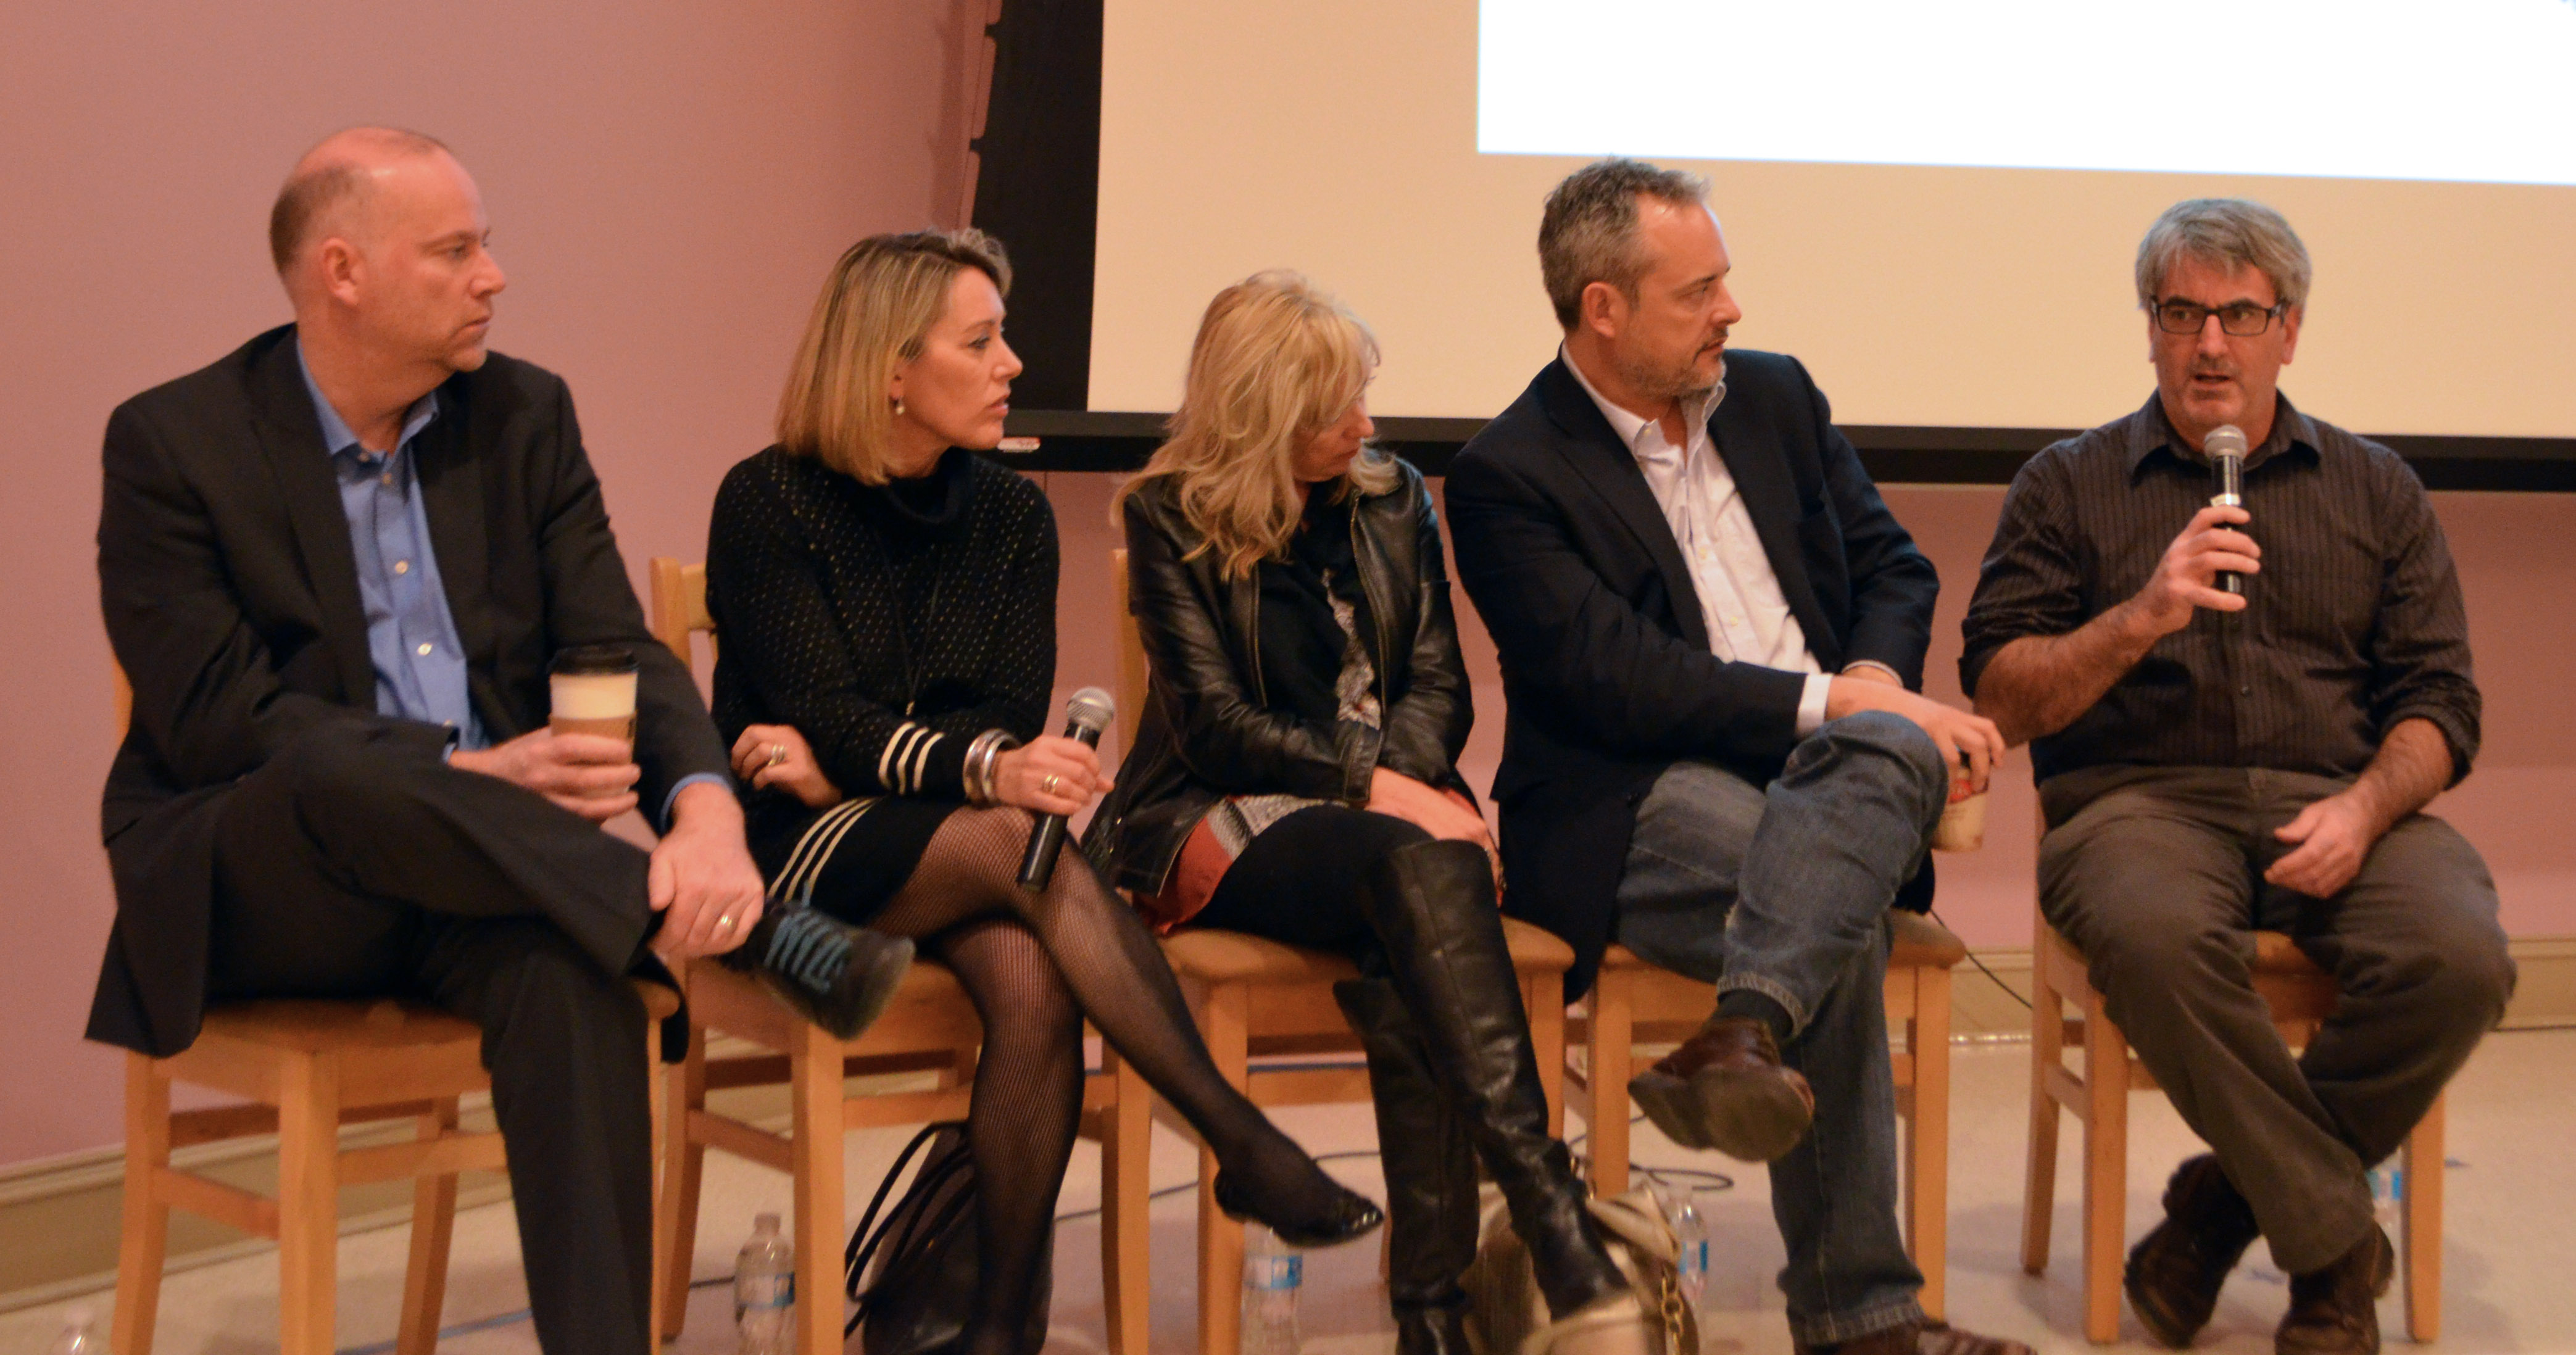 Tim Bousquet, far right, is worried about the future of journalism (Photo by Dave Lostracco)